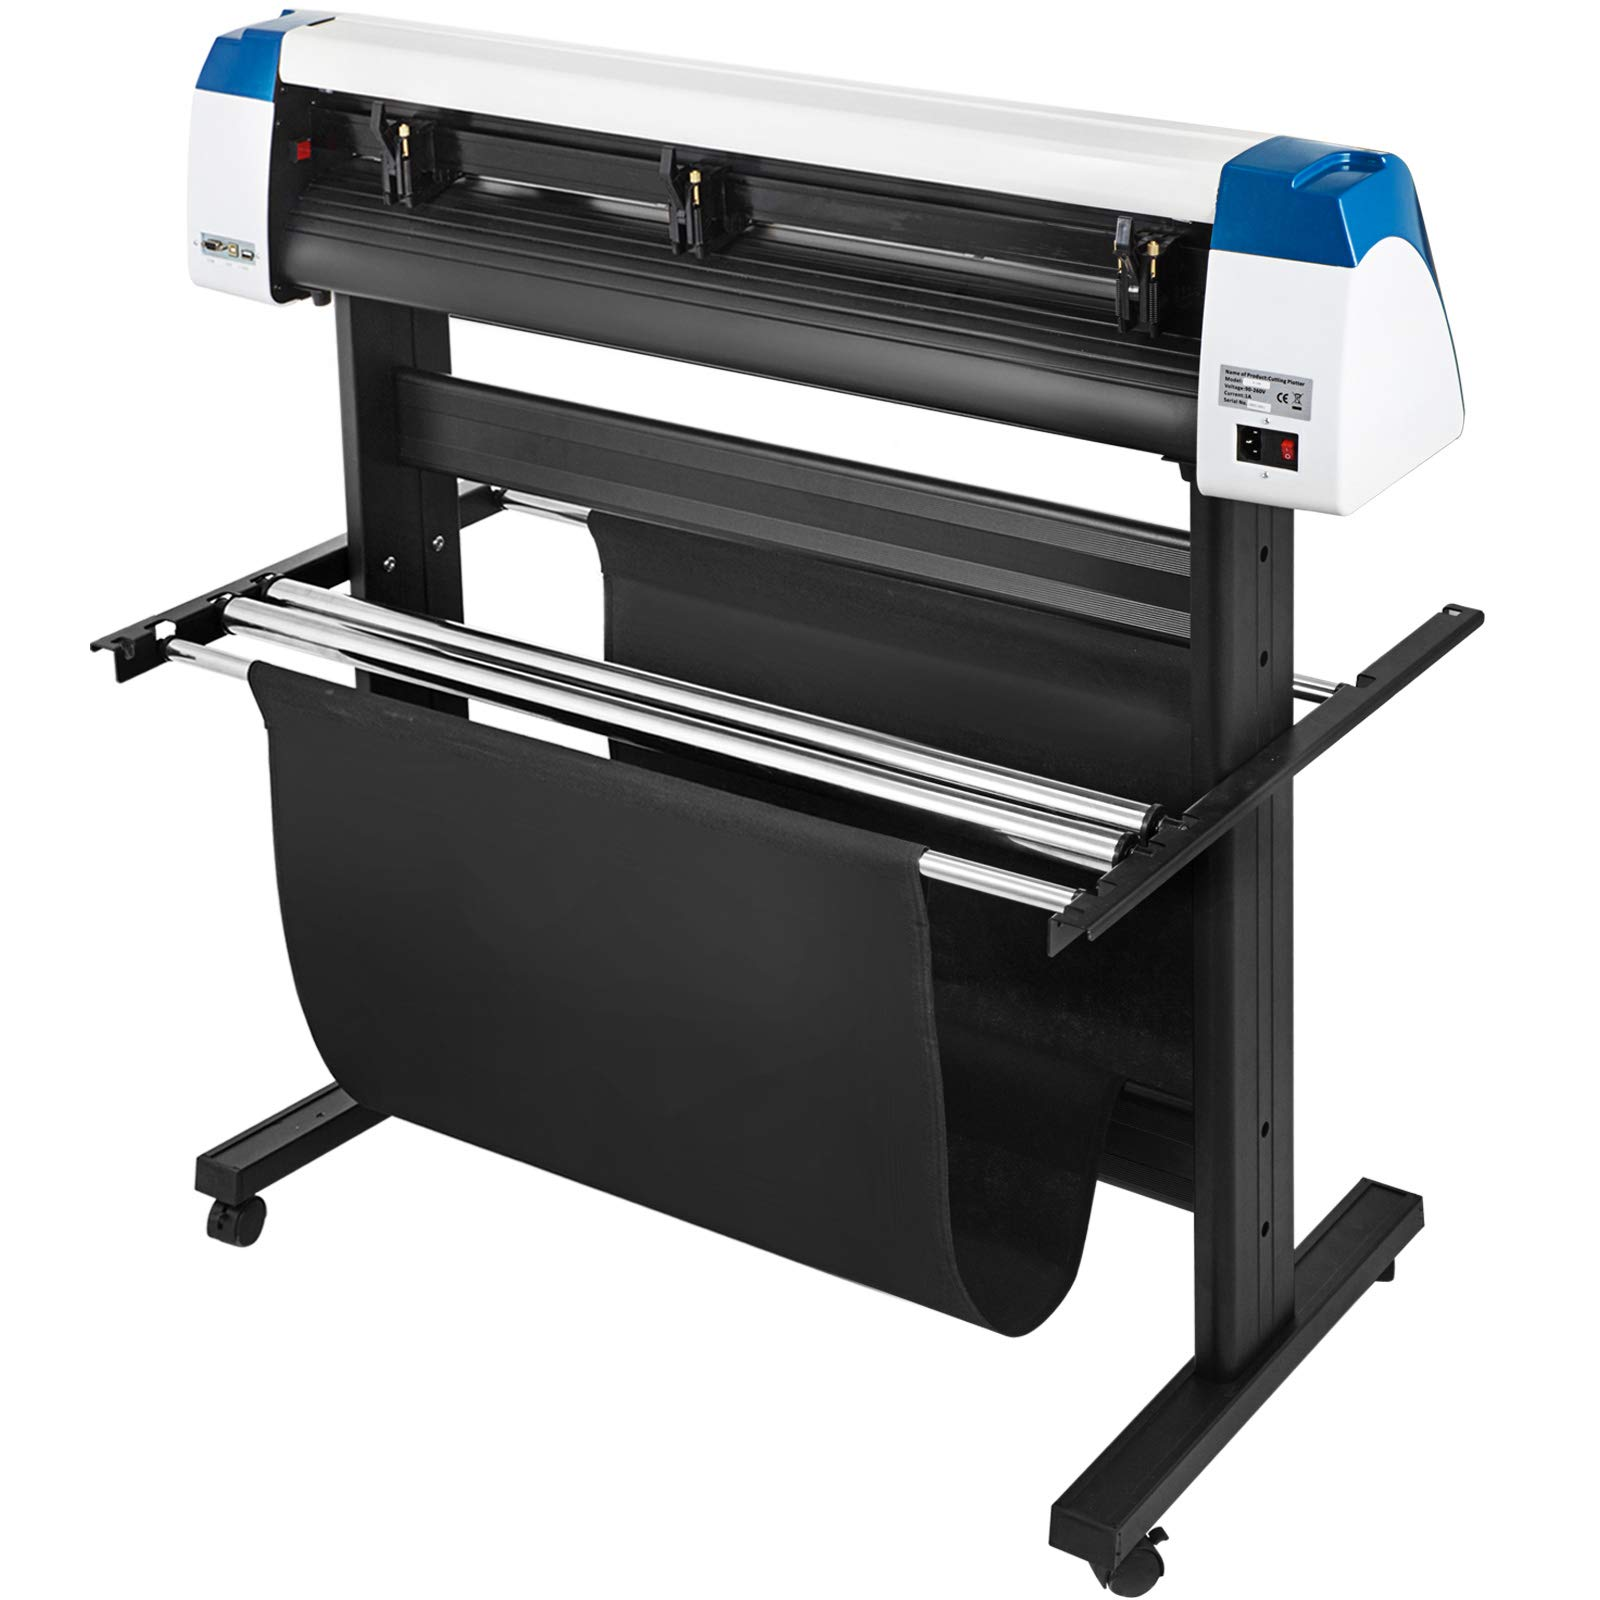 VEVOR Vinyl Cutter 28 inch Vinyl Cutter Machine Semi-Automatic DIY Vinyl Printer Cutter Machine Manual Positioning Sign Cutting with Floor Stand Signmaster Software by VEVOR (Image #3)